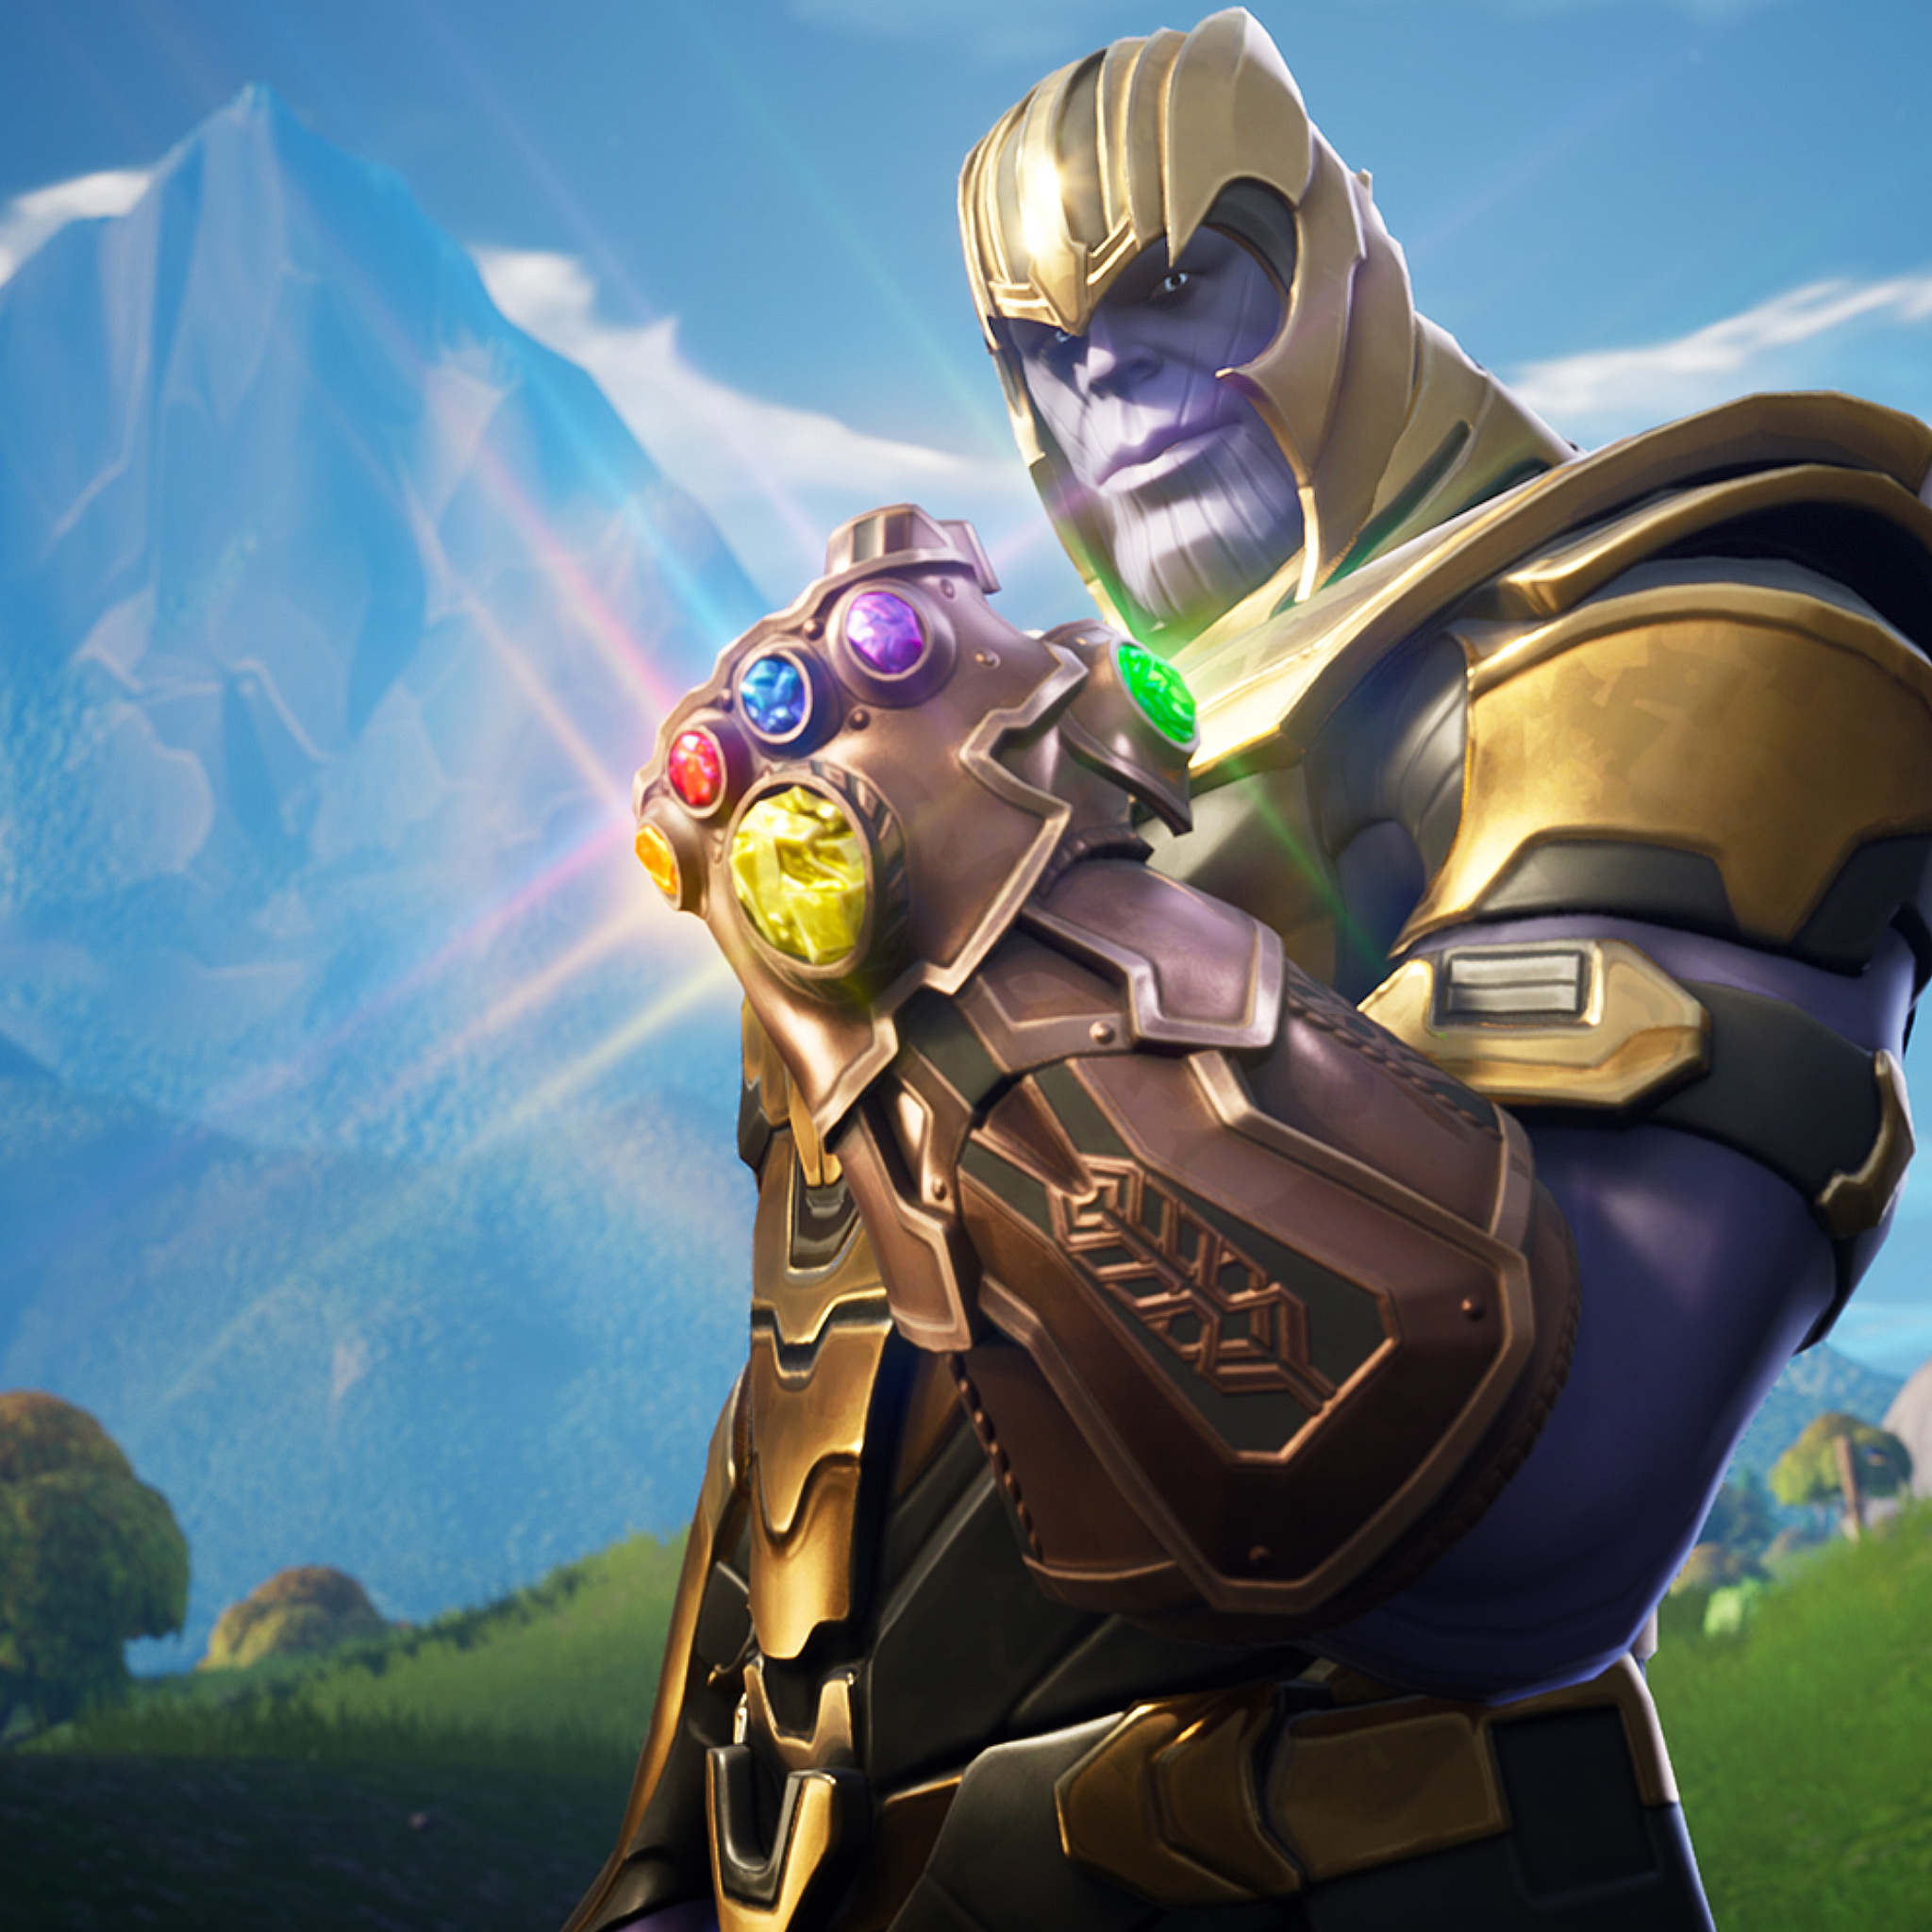 31 Fortnite Thanos Wallpapers On Wallpapersafari